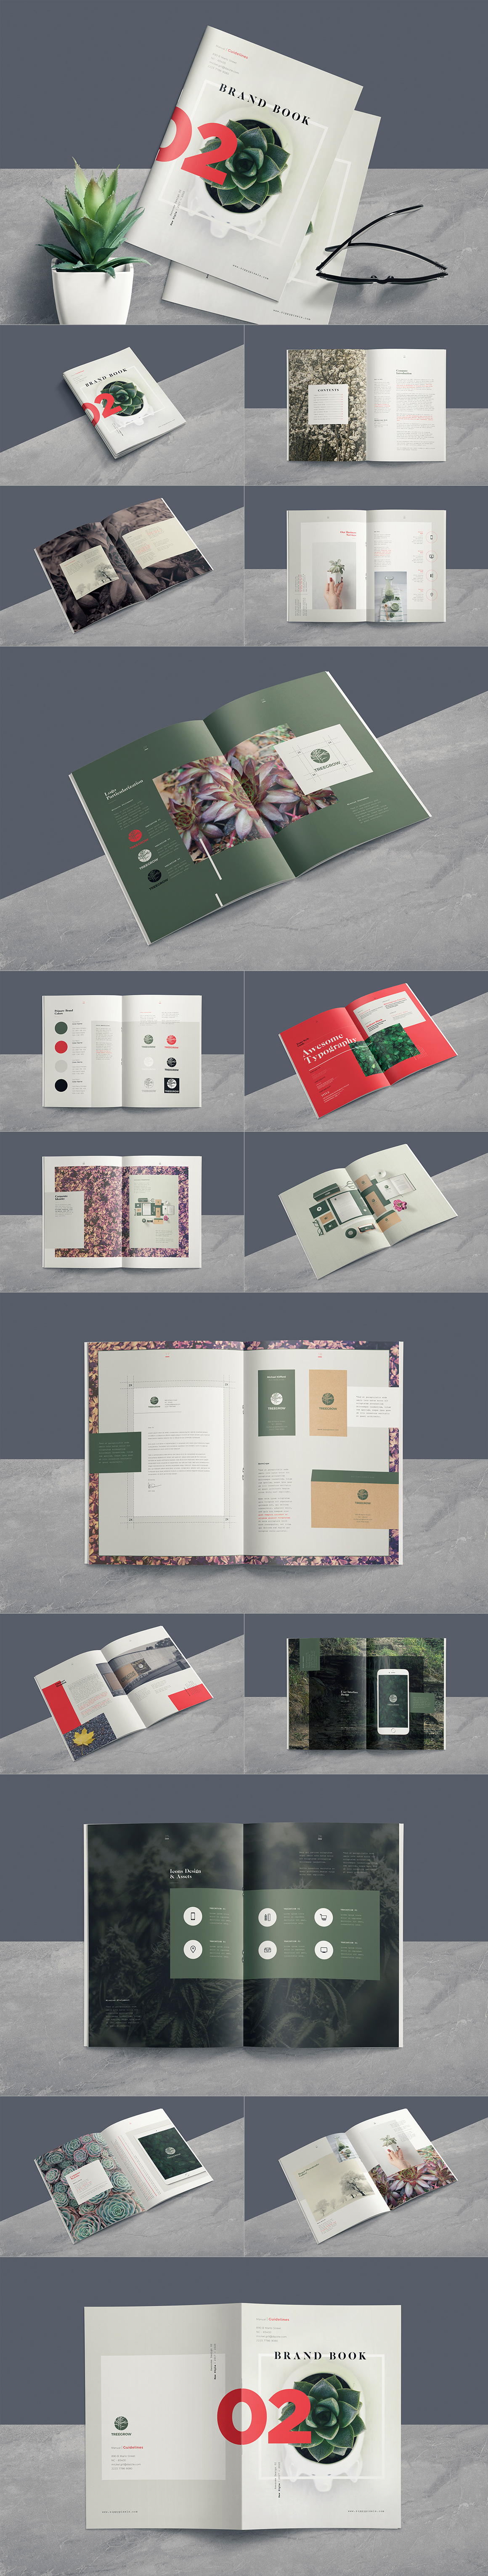 Style Guide & Brand Book Templates-strip19